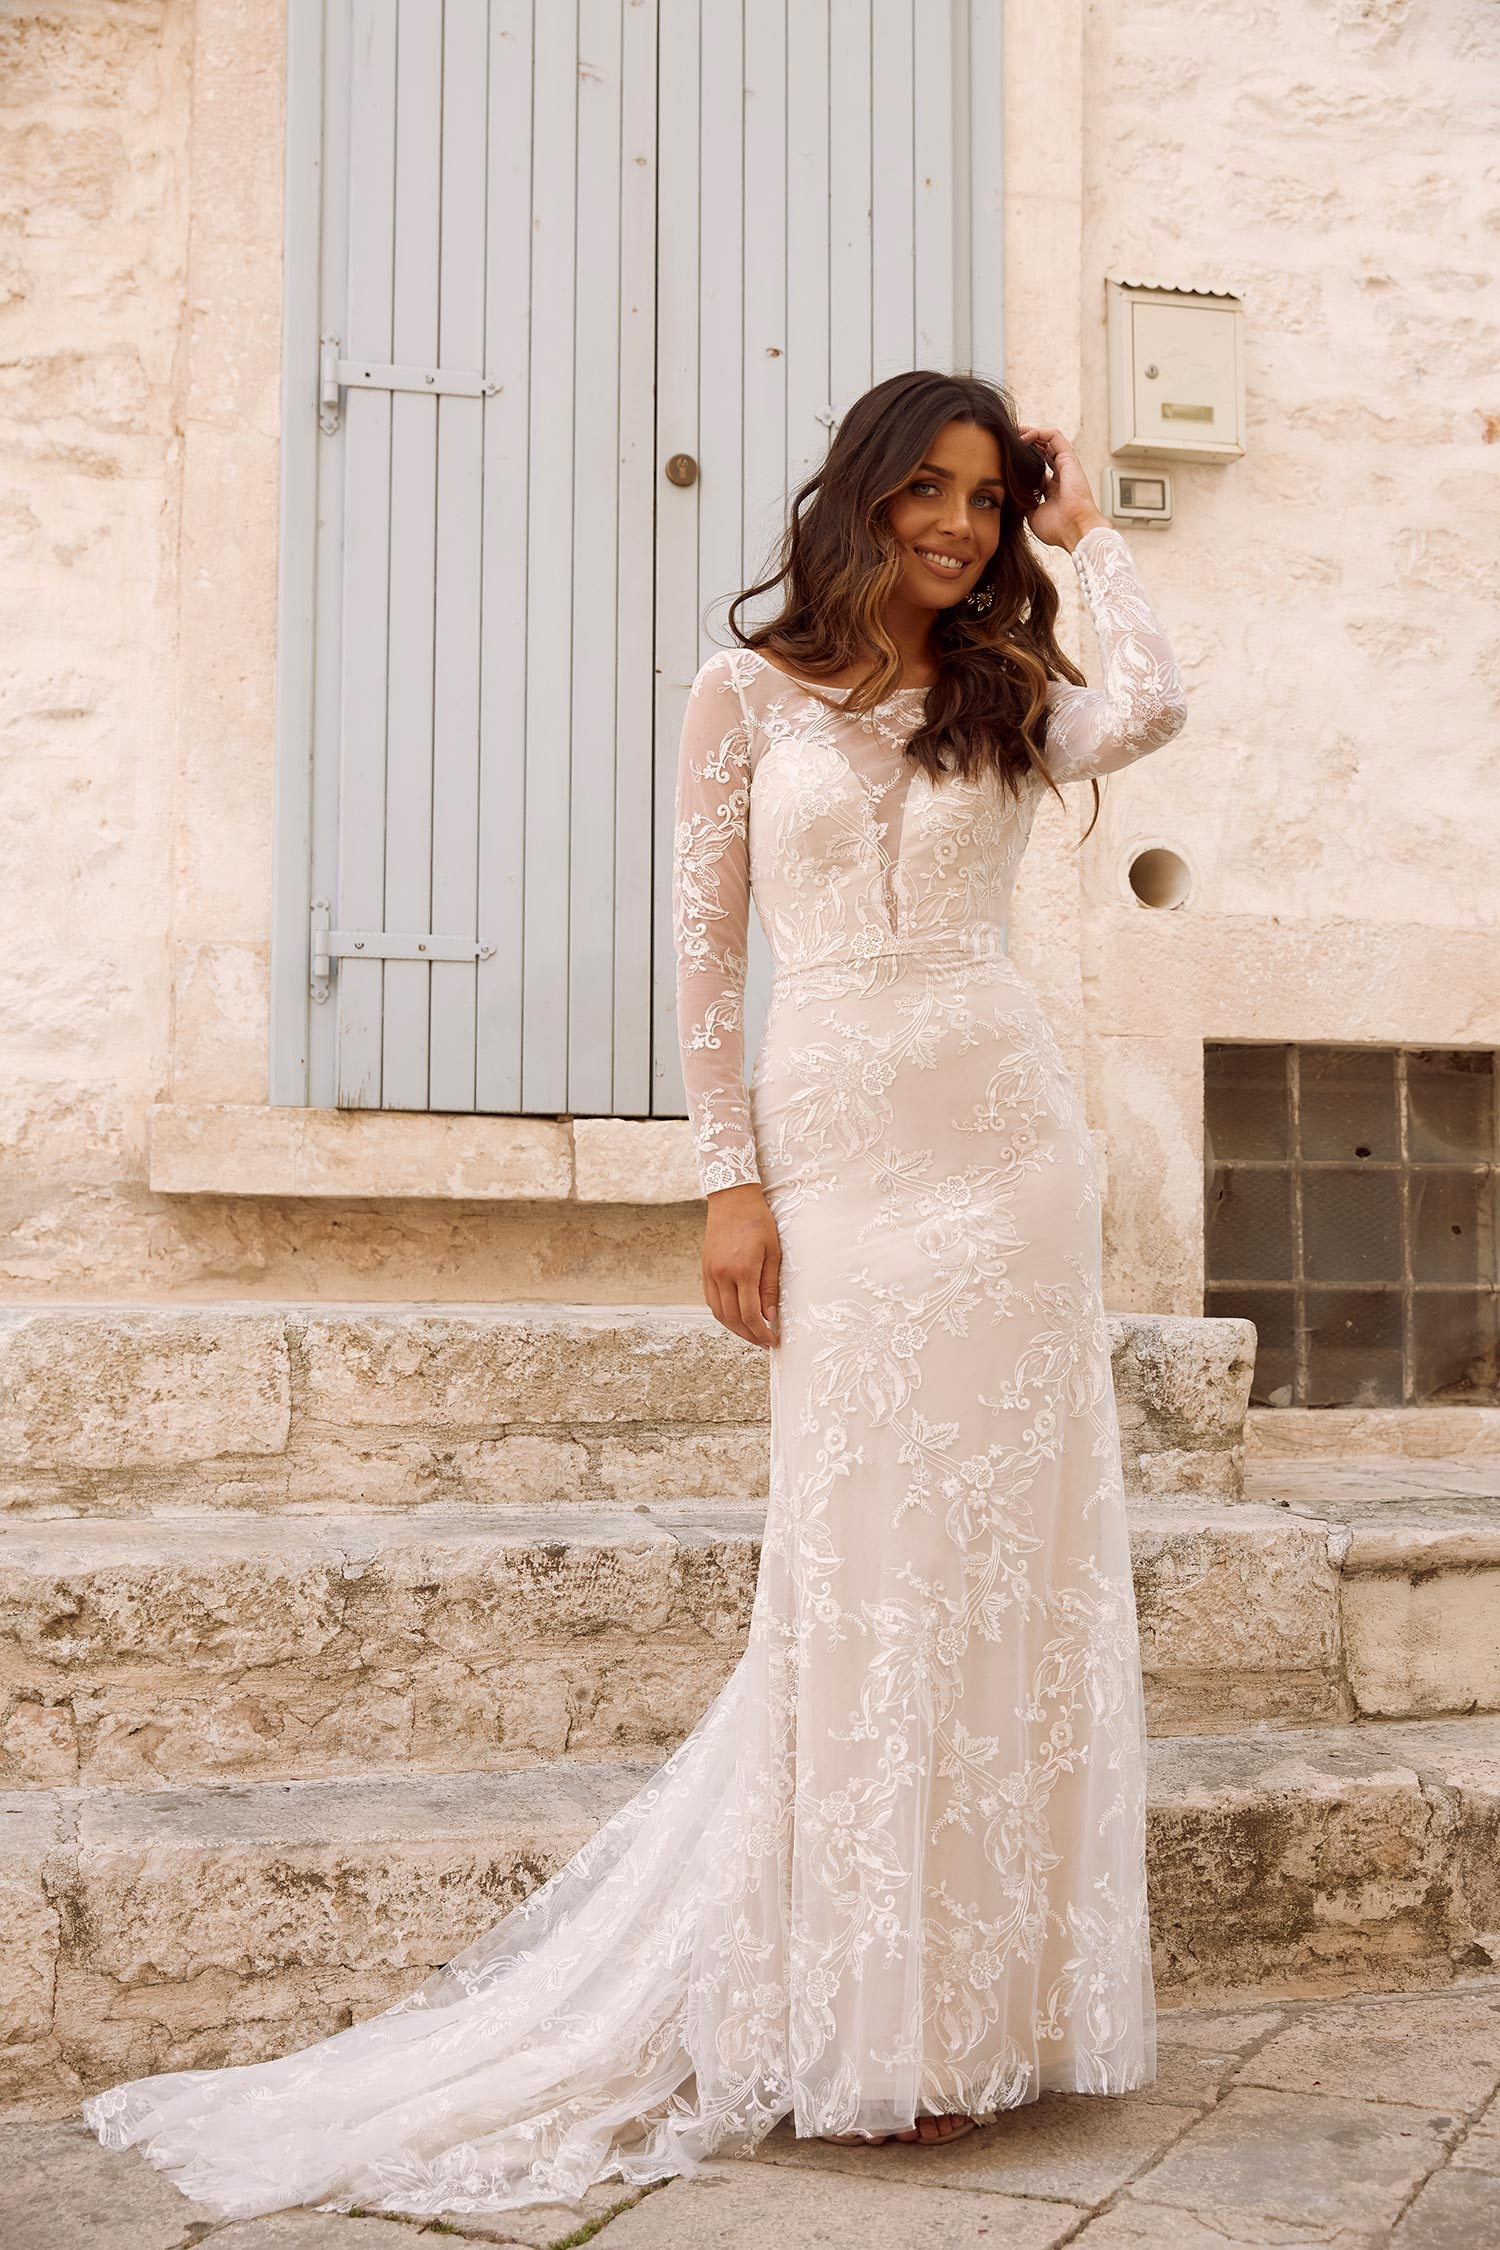 MINDY-ML11303-ILLUSION-PLUNGING-NECK-FULL-LENGTH-FLORAL-LACE-WITH-SLEEVES-WEDDING-DRESS-MADI-LANE-BRIDAL4